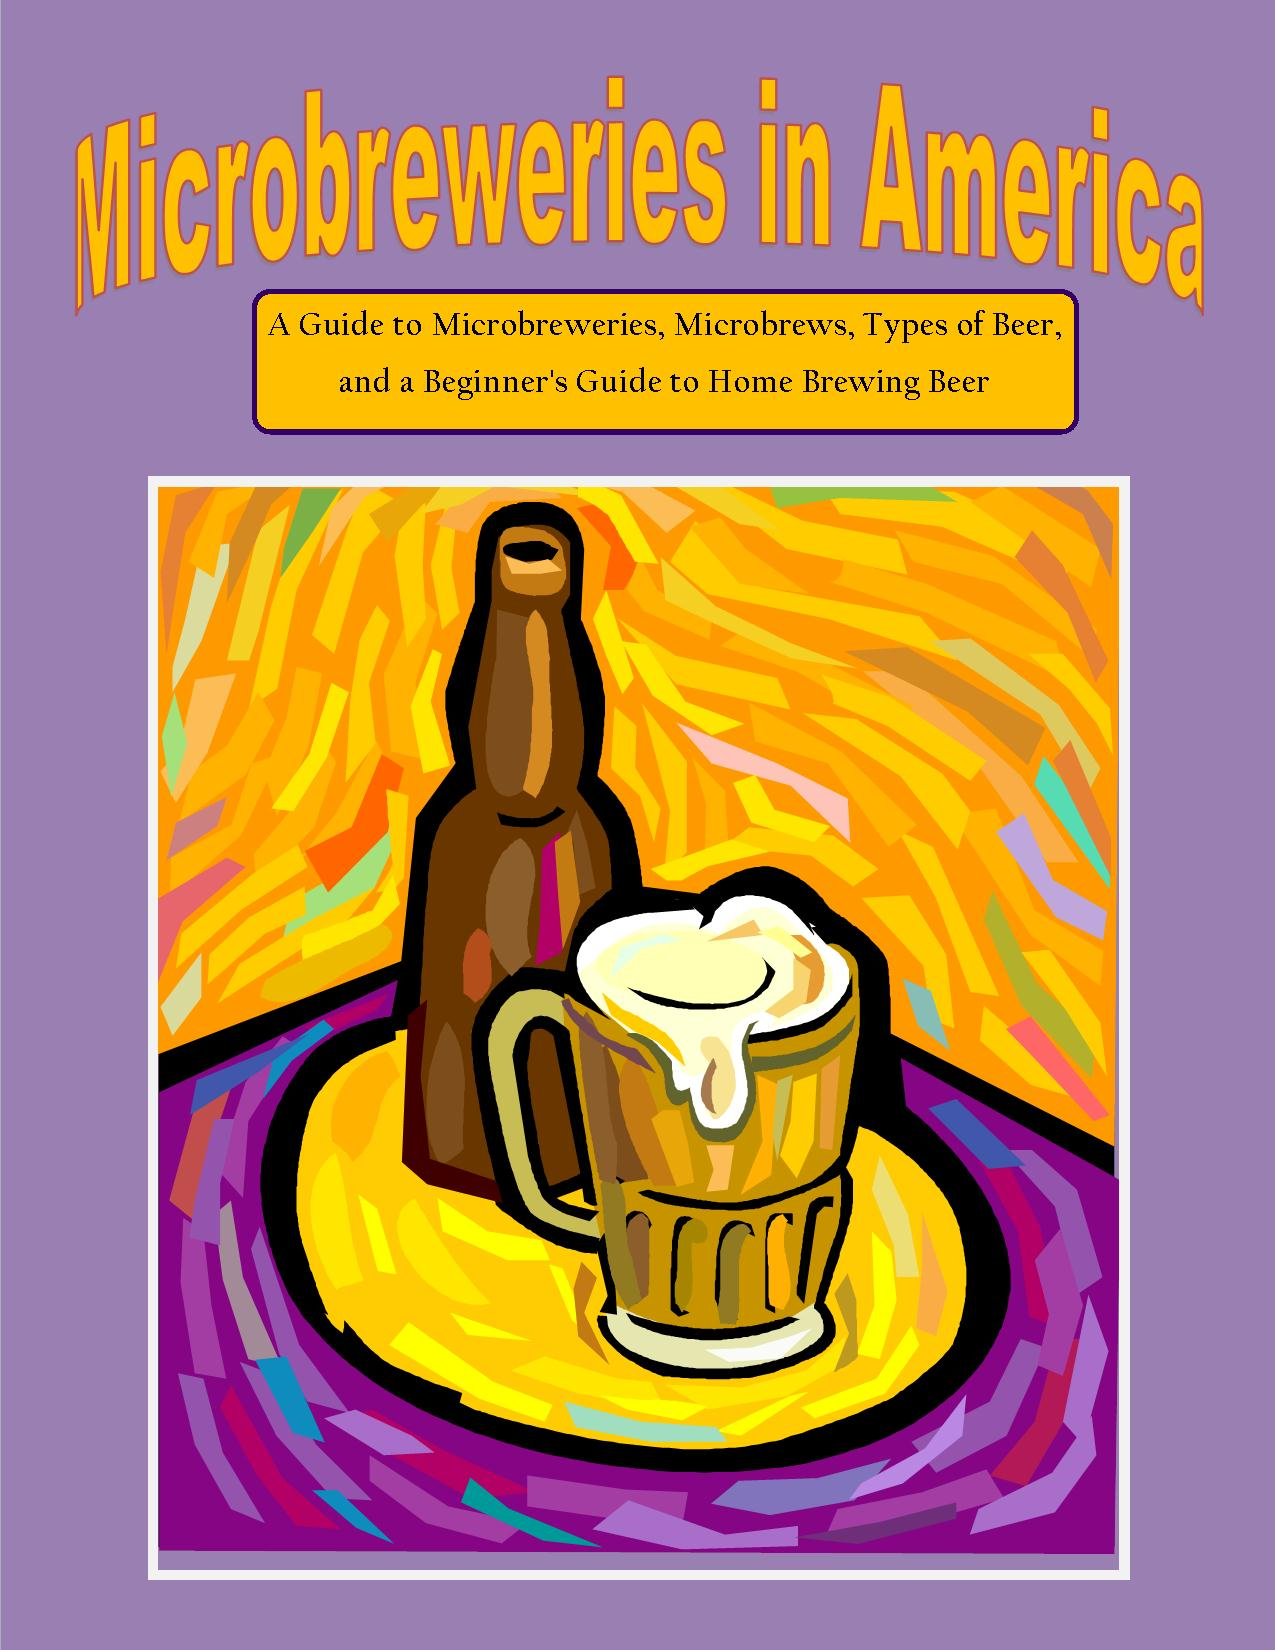 Microbreweries in America: A Guide to Microbreweries, Microbrews, Types of Beer, and a Beginner's Guide to Home Brewing Beer